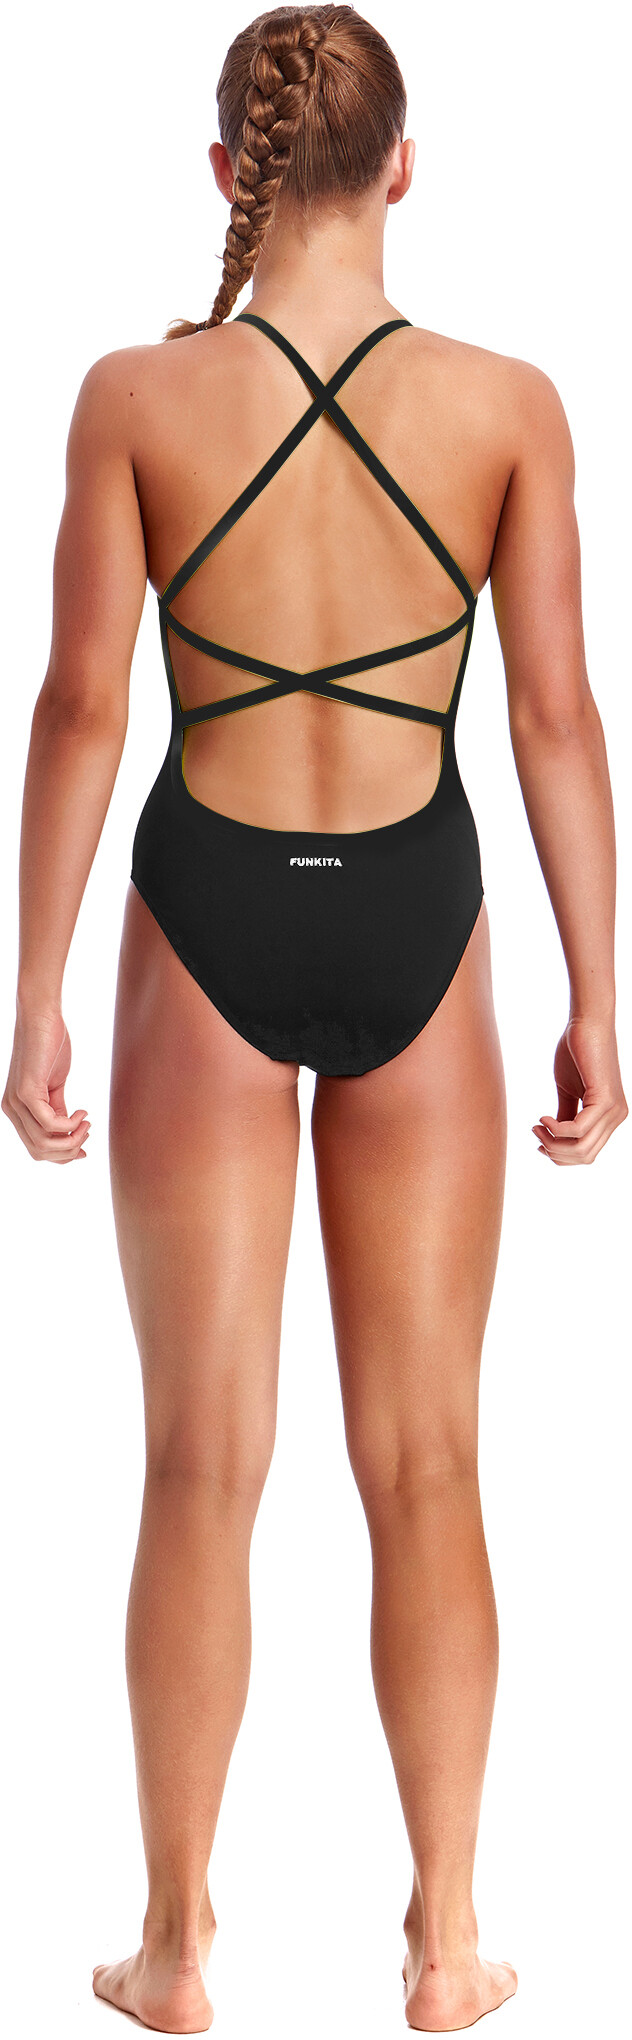 7ee94010c Funkita Strapped In One Piece Swimsuit Girls still black solid at ...